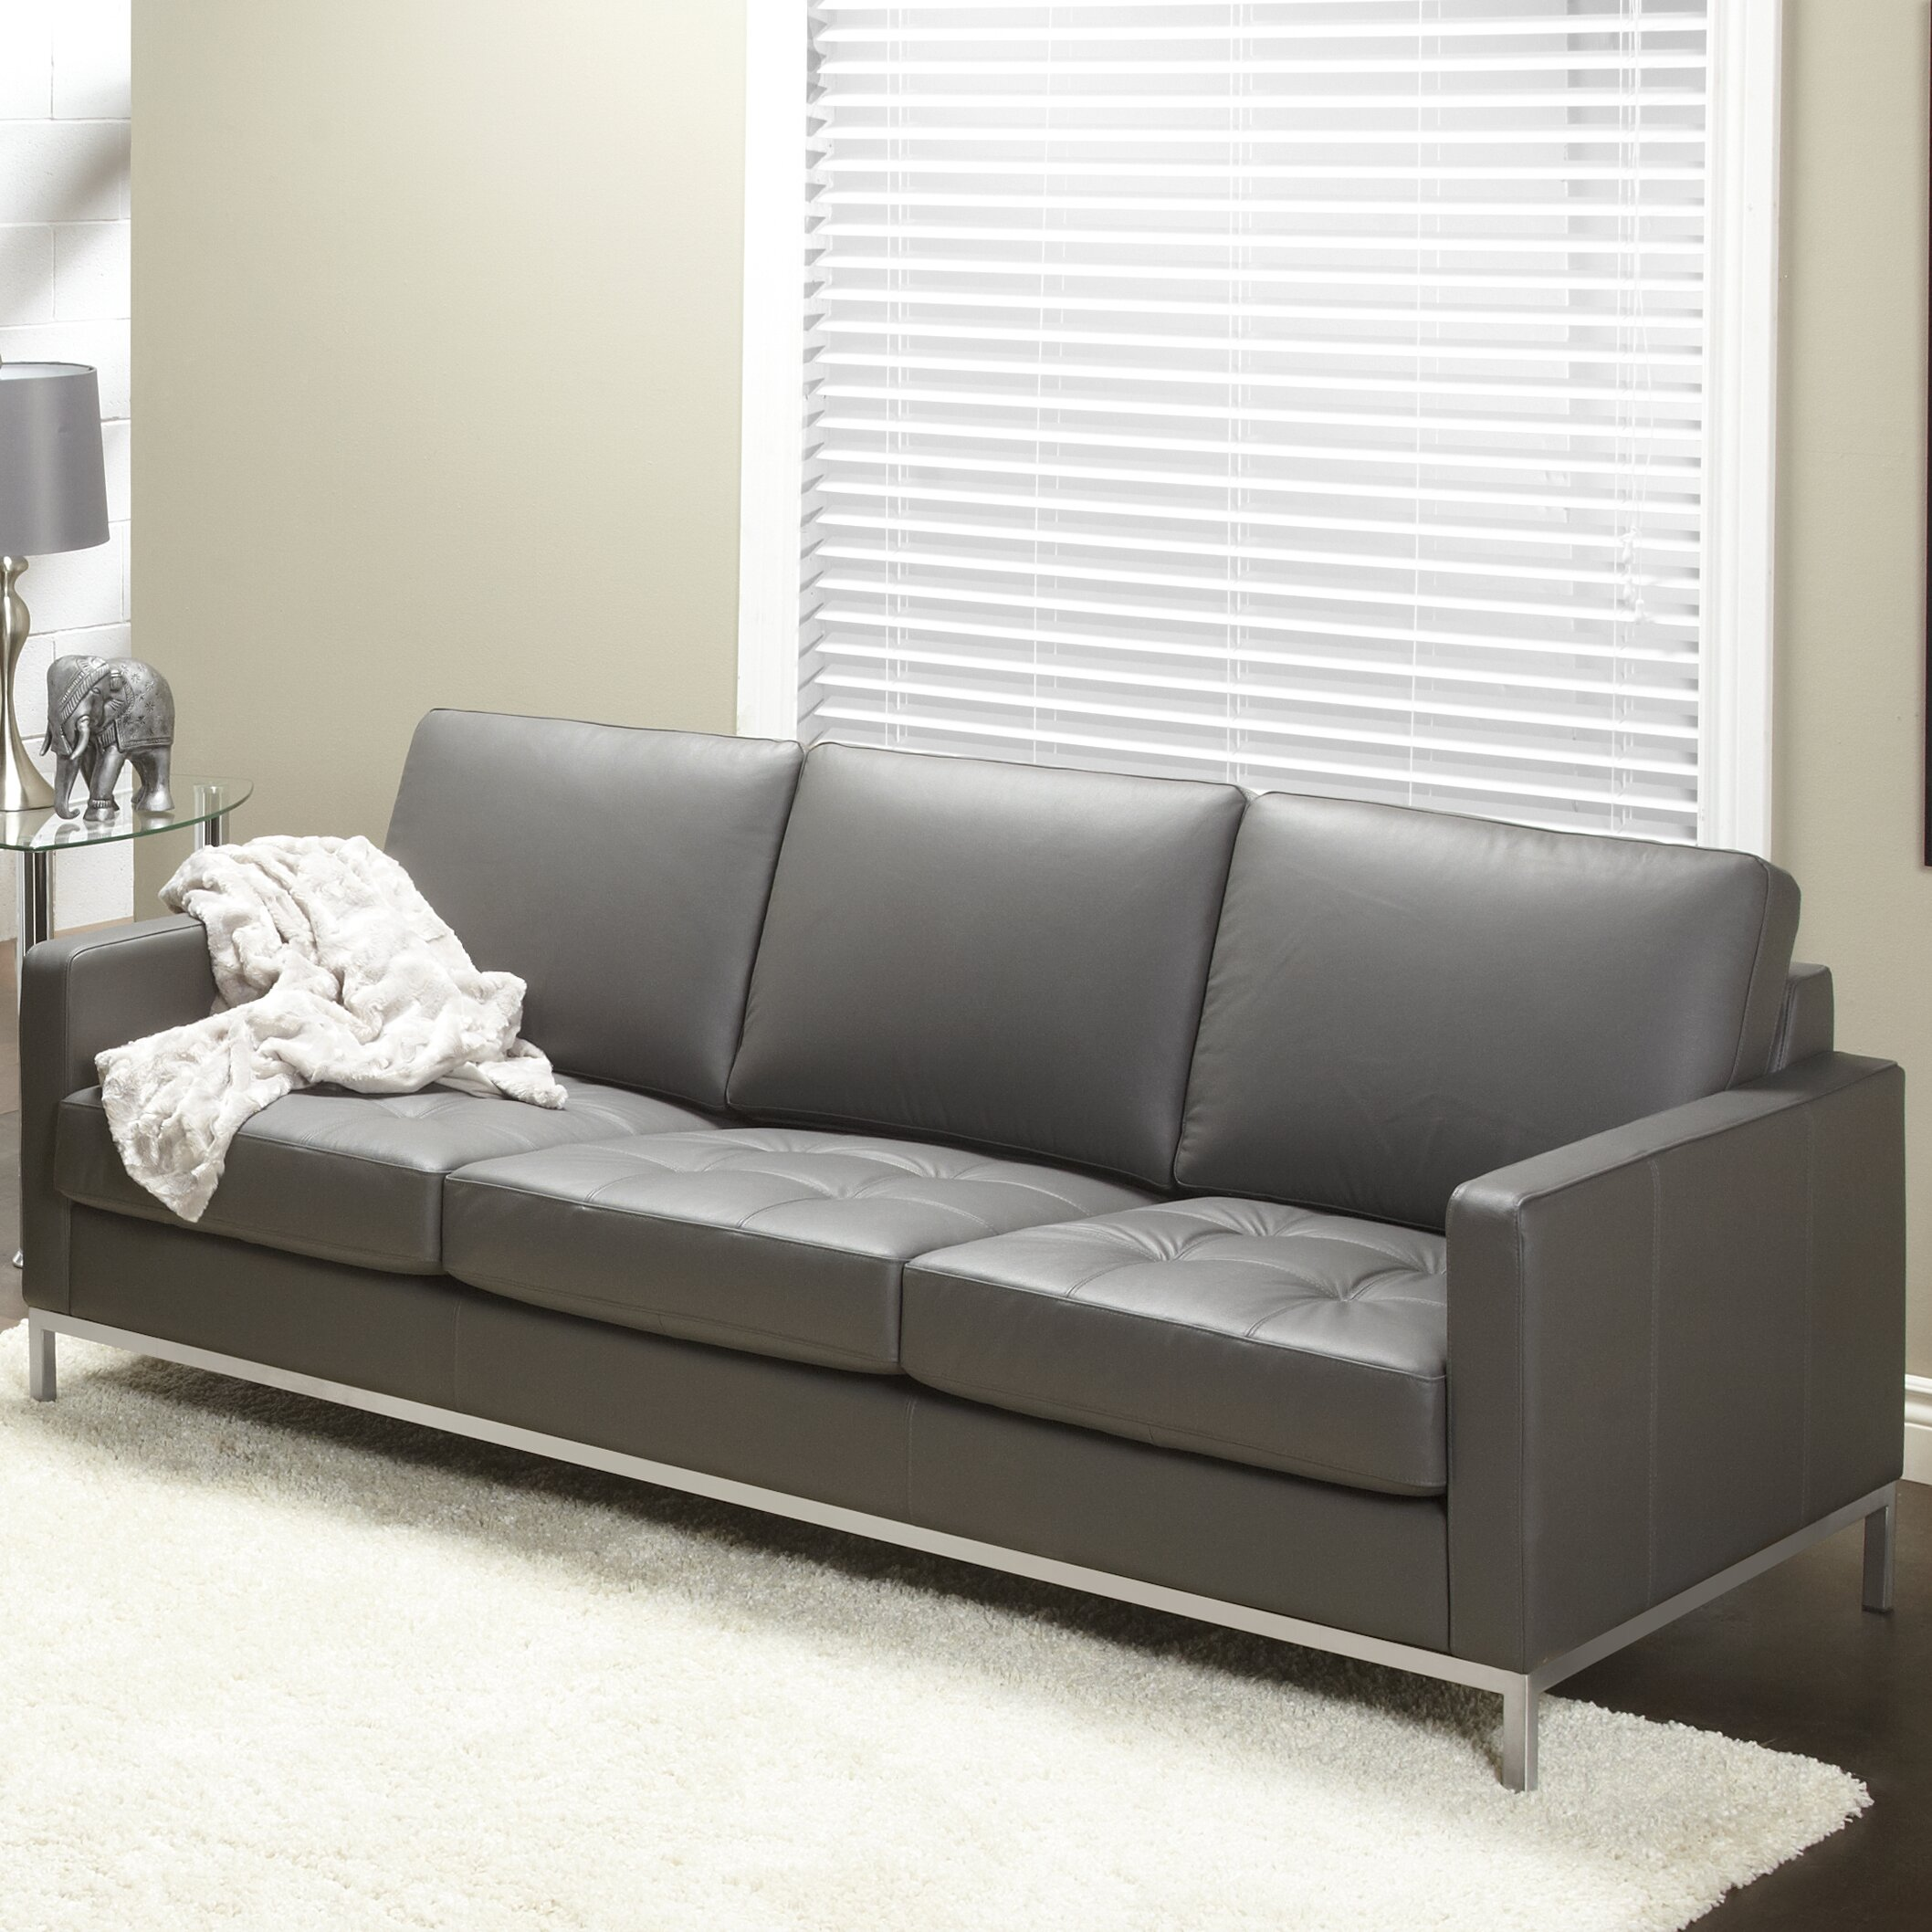 Leather Sofas Reviews: Lind Furniture Regency Top Grain Leather Sofa & Reviews